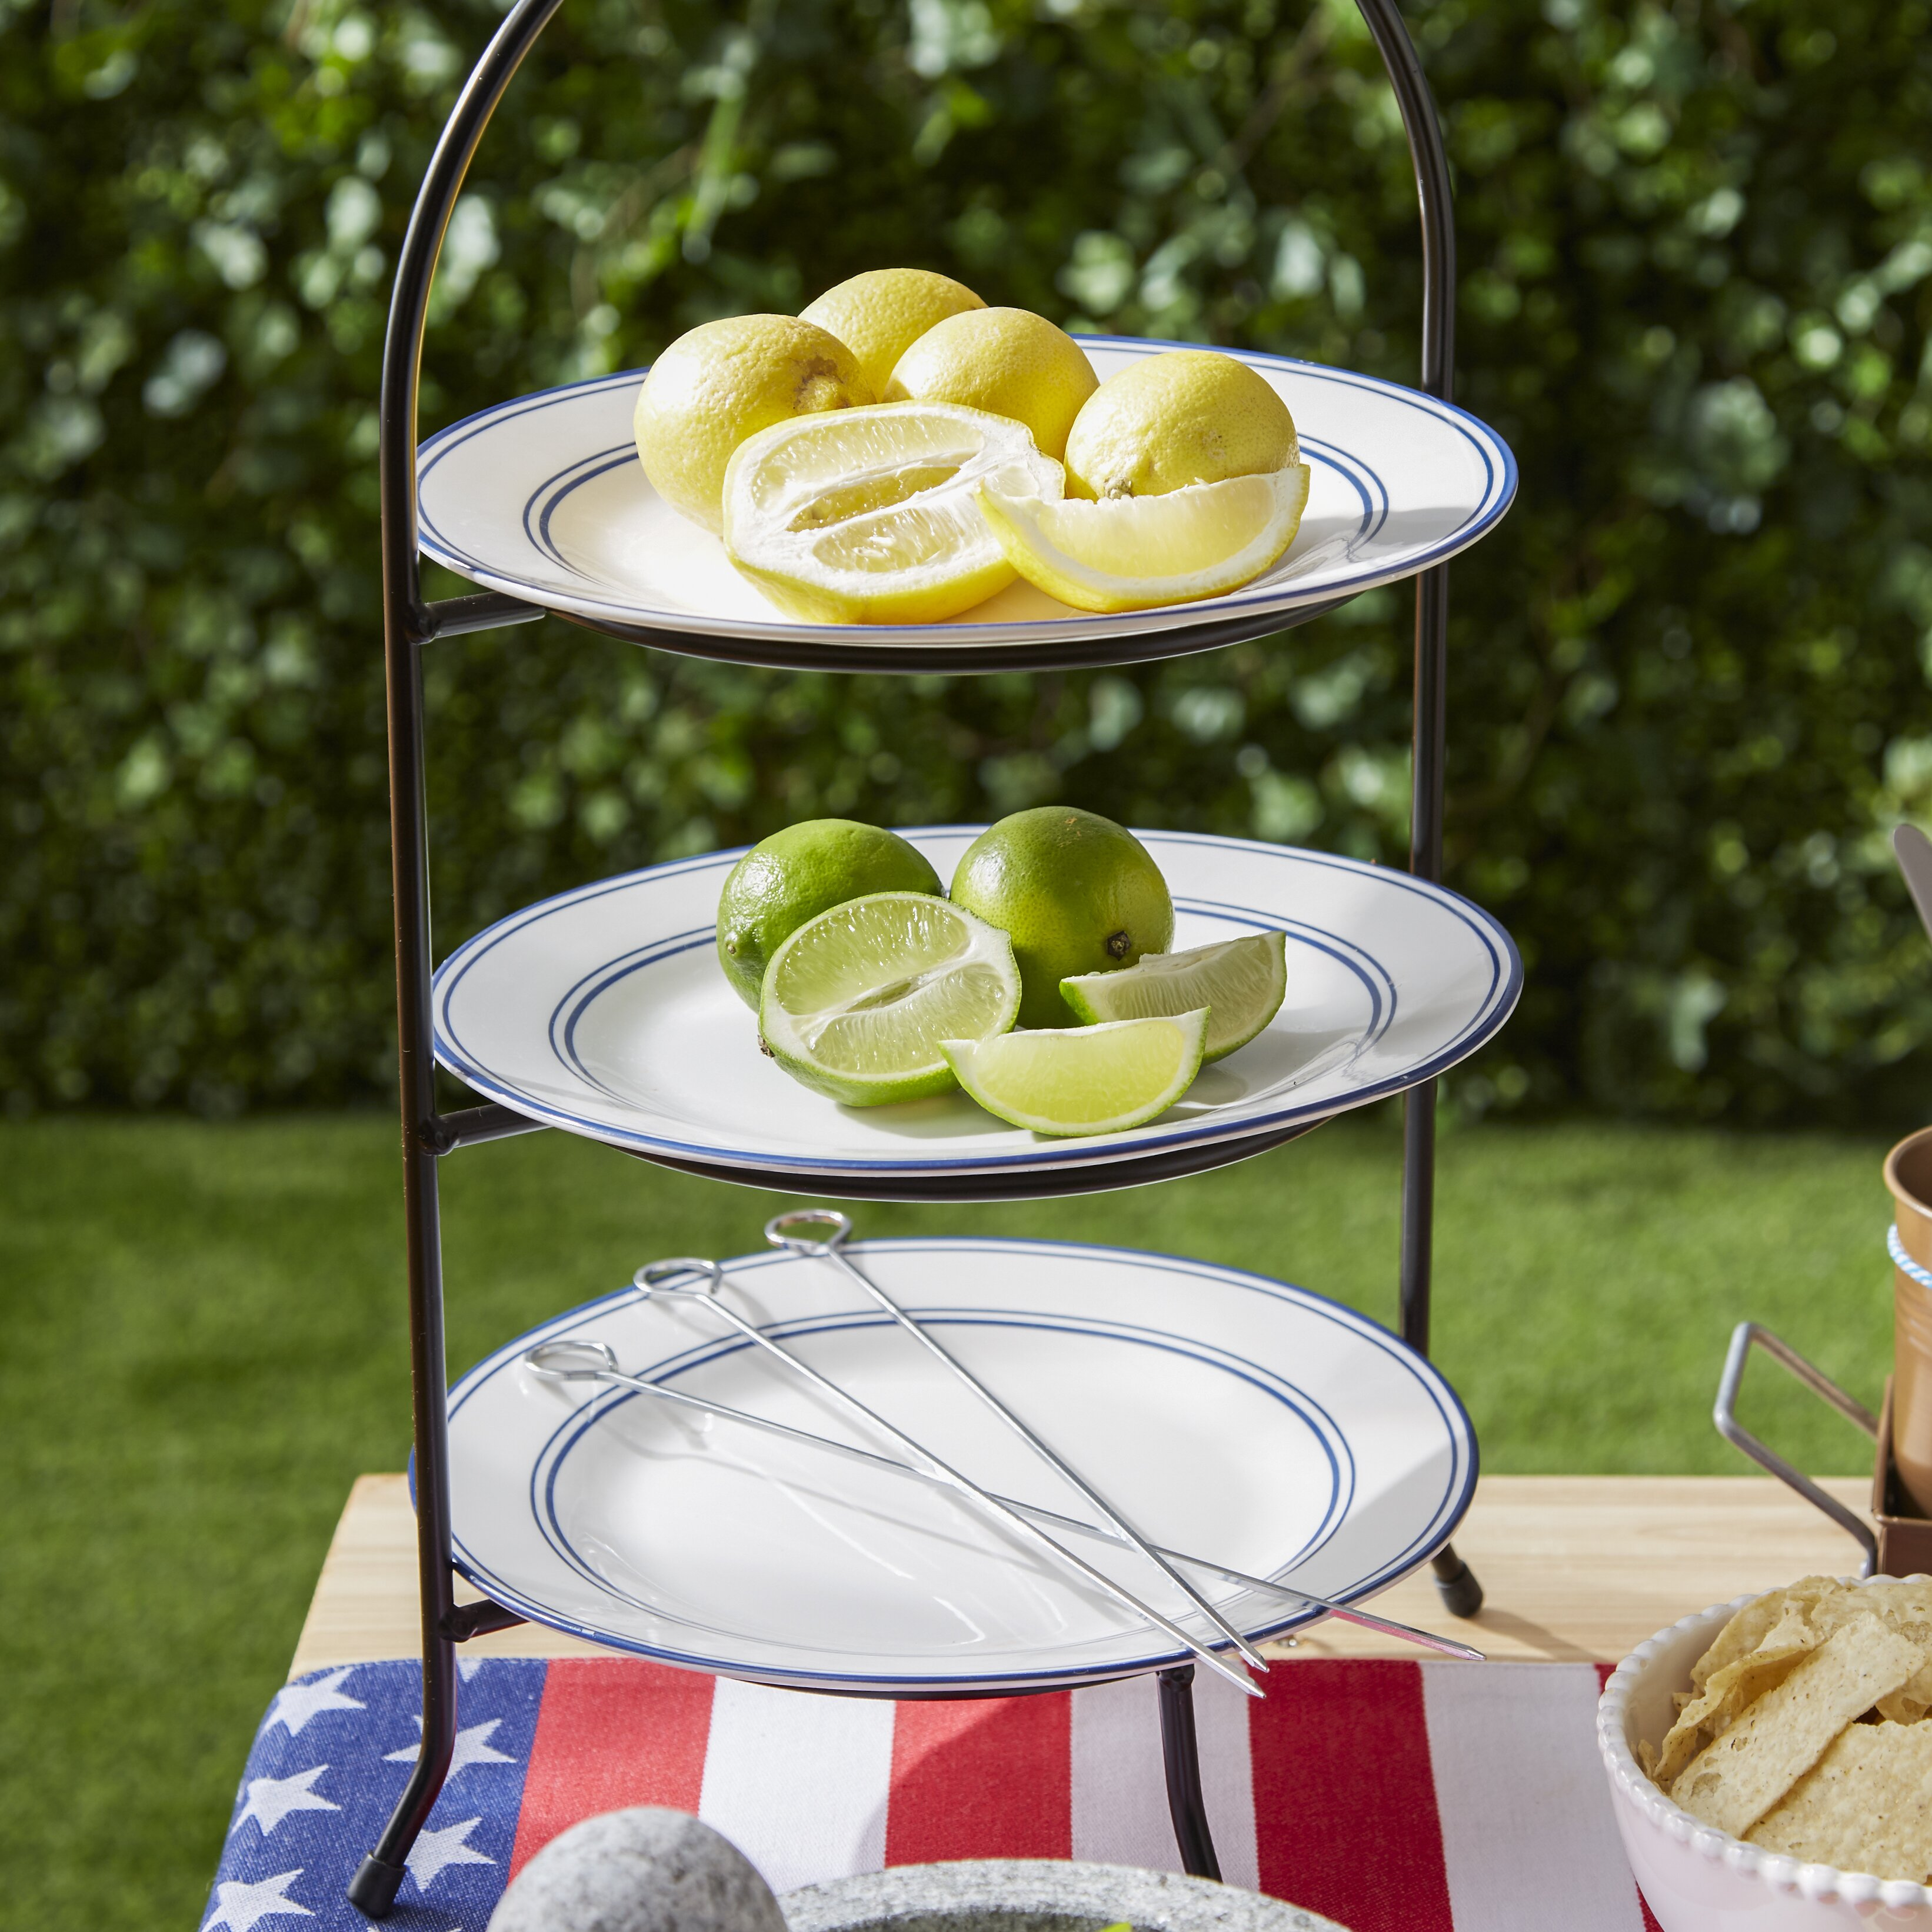 Symple Stuff 3 Tier Dinner Plate Rack Tiered Stand